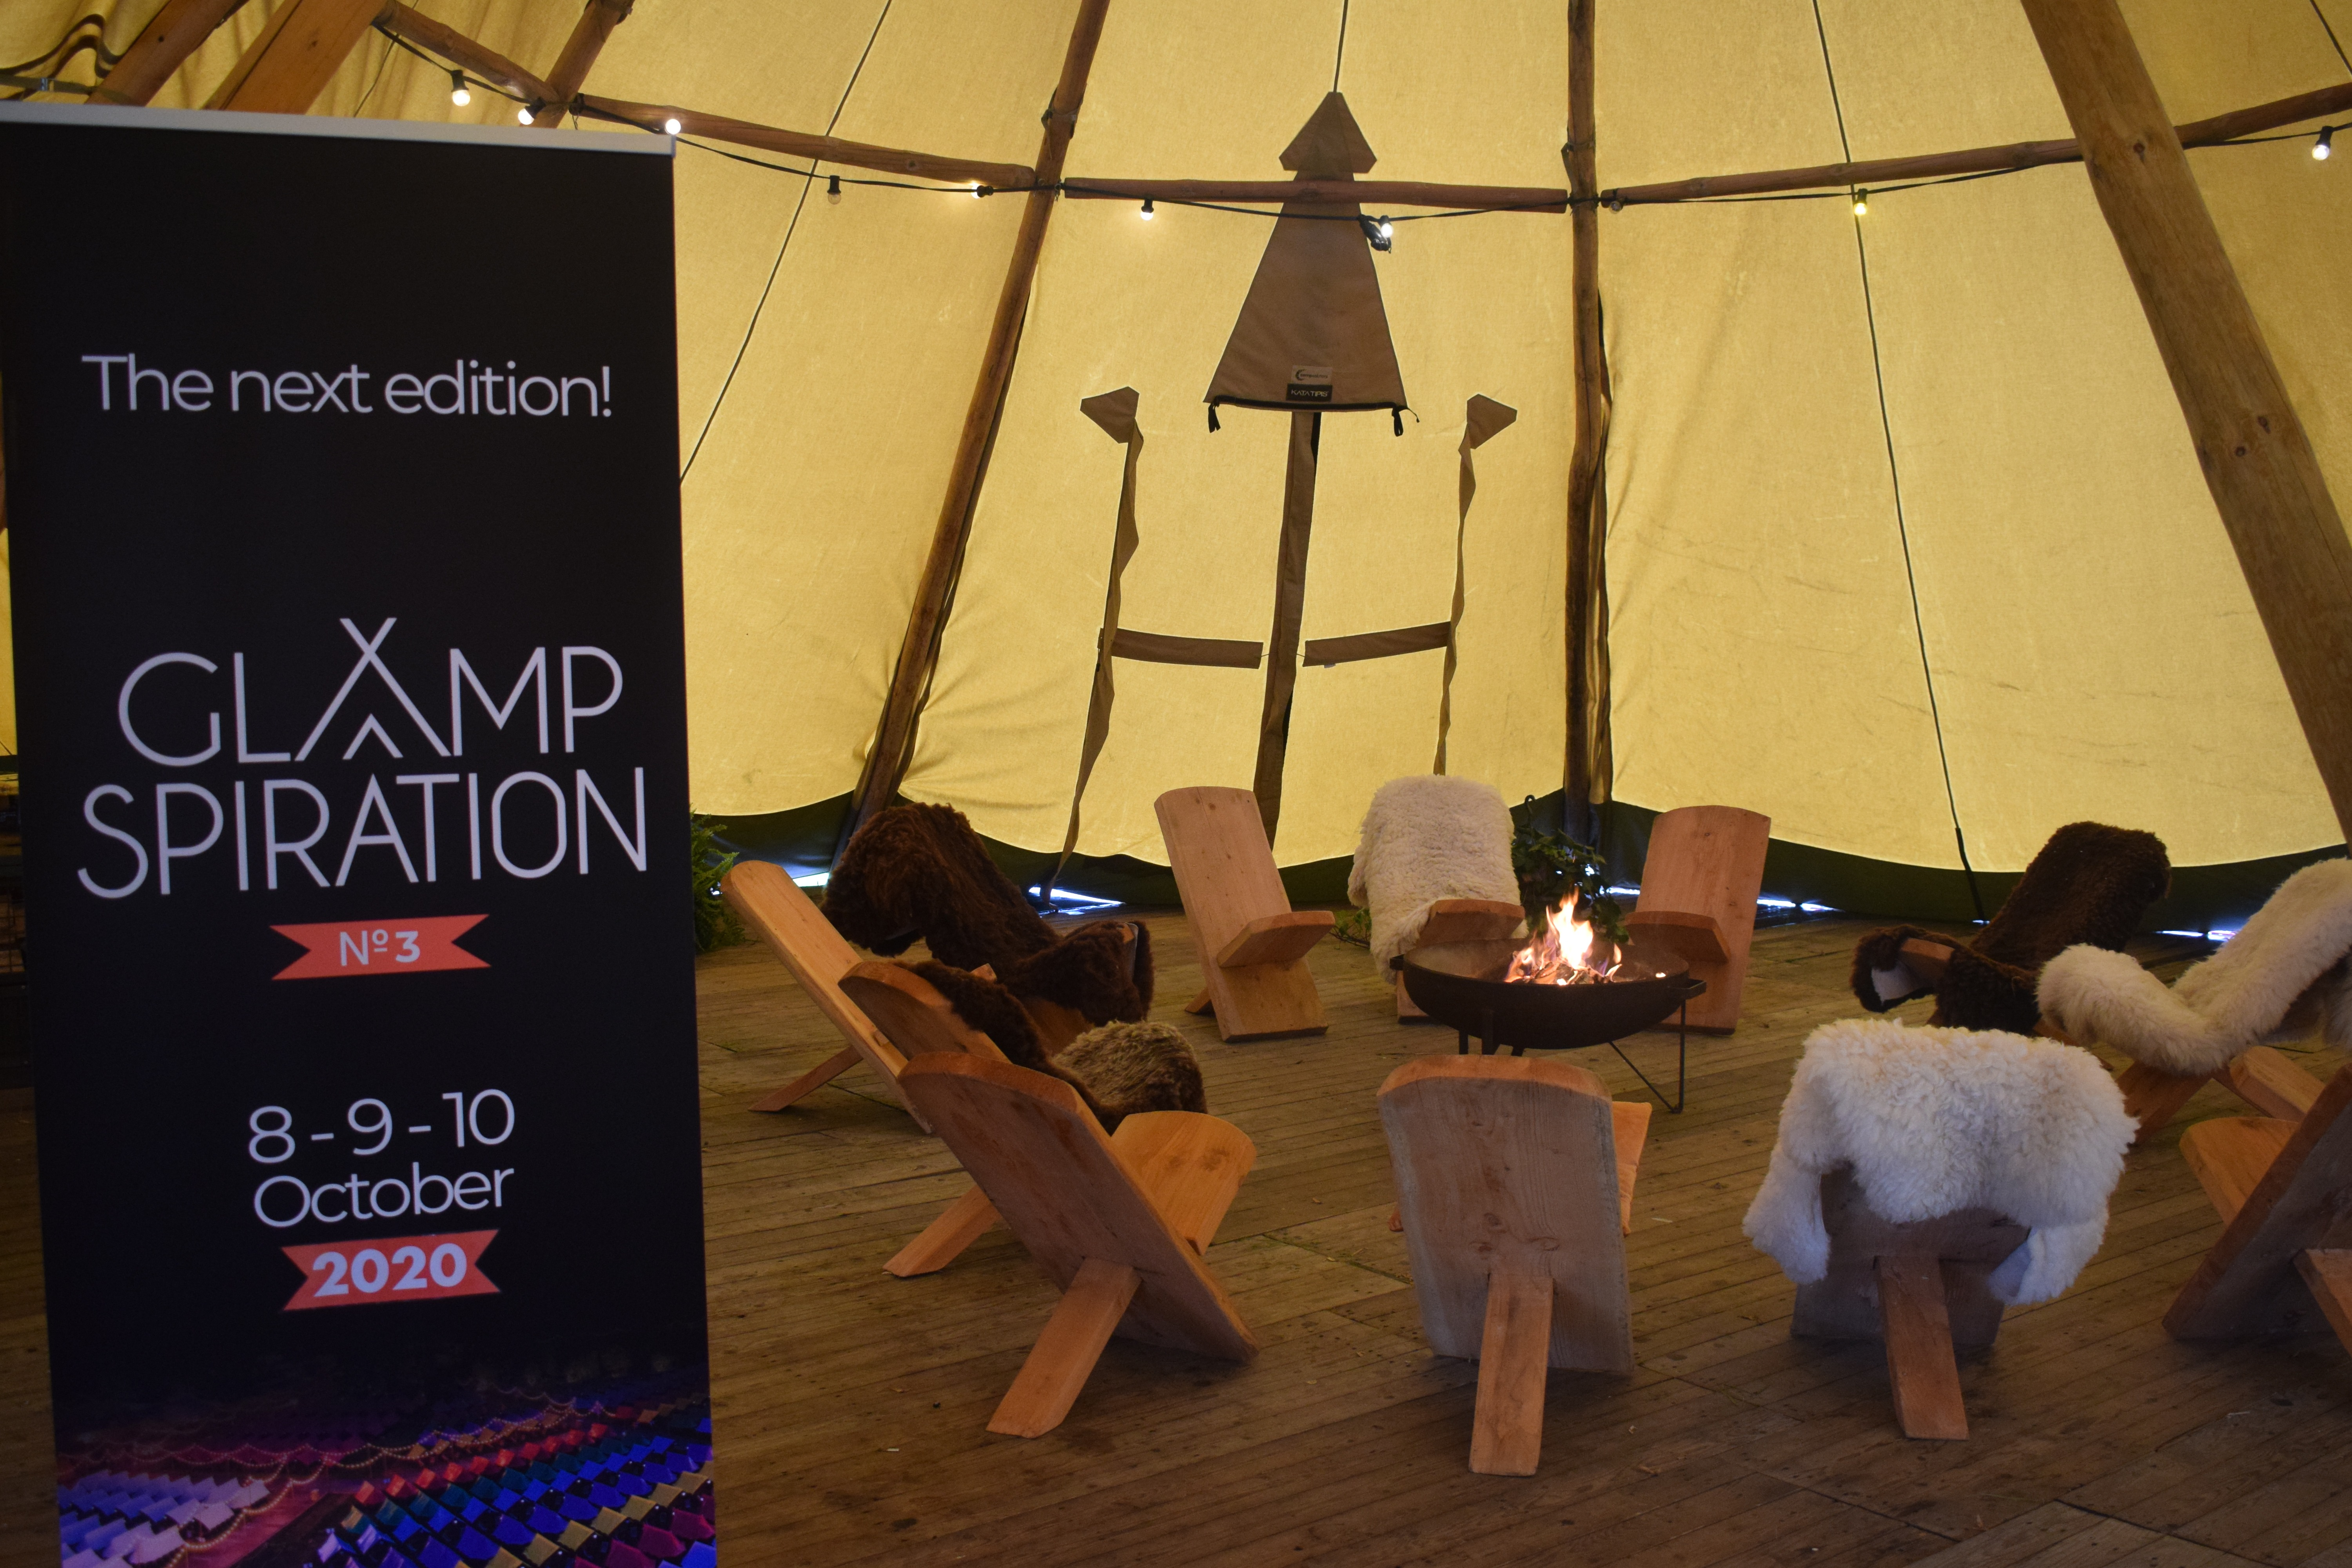 Glampspiration No. 3 via Glamping.nl